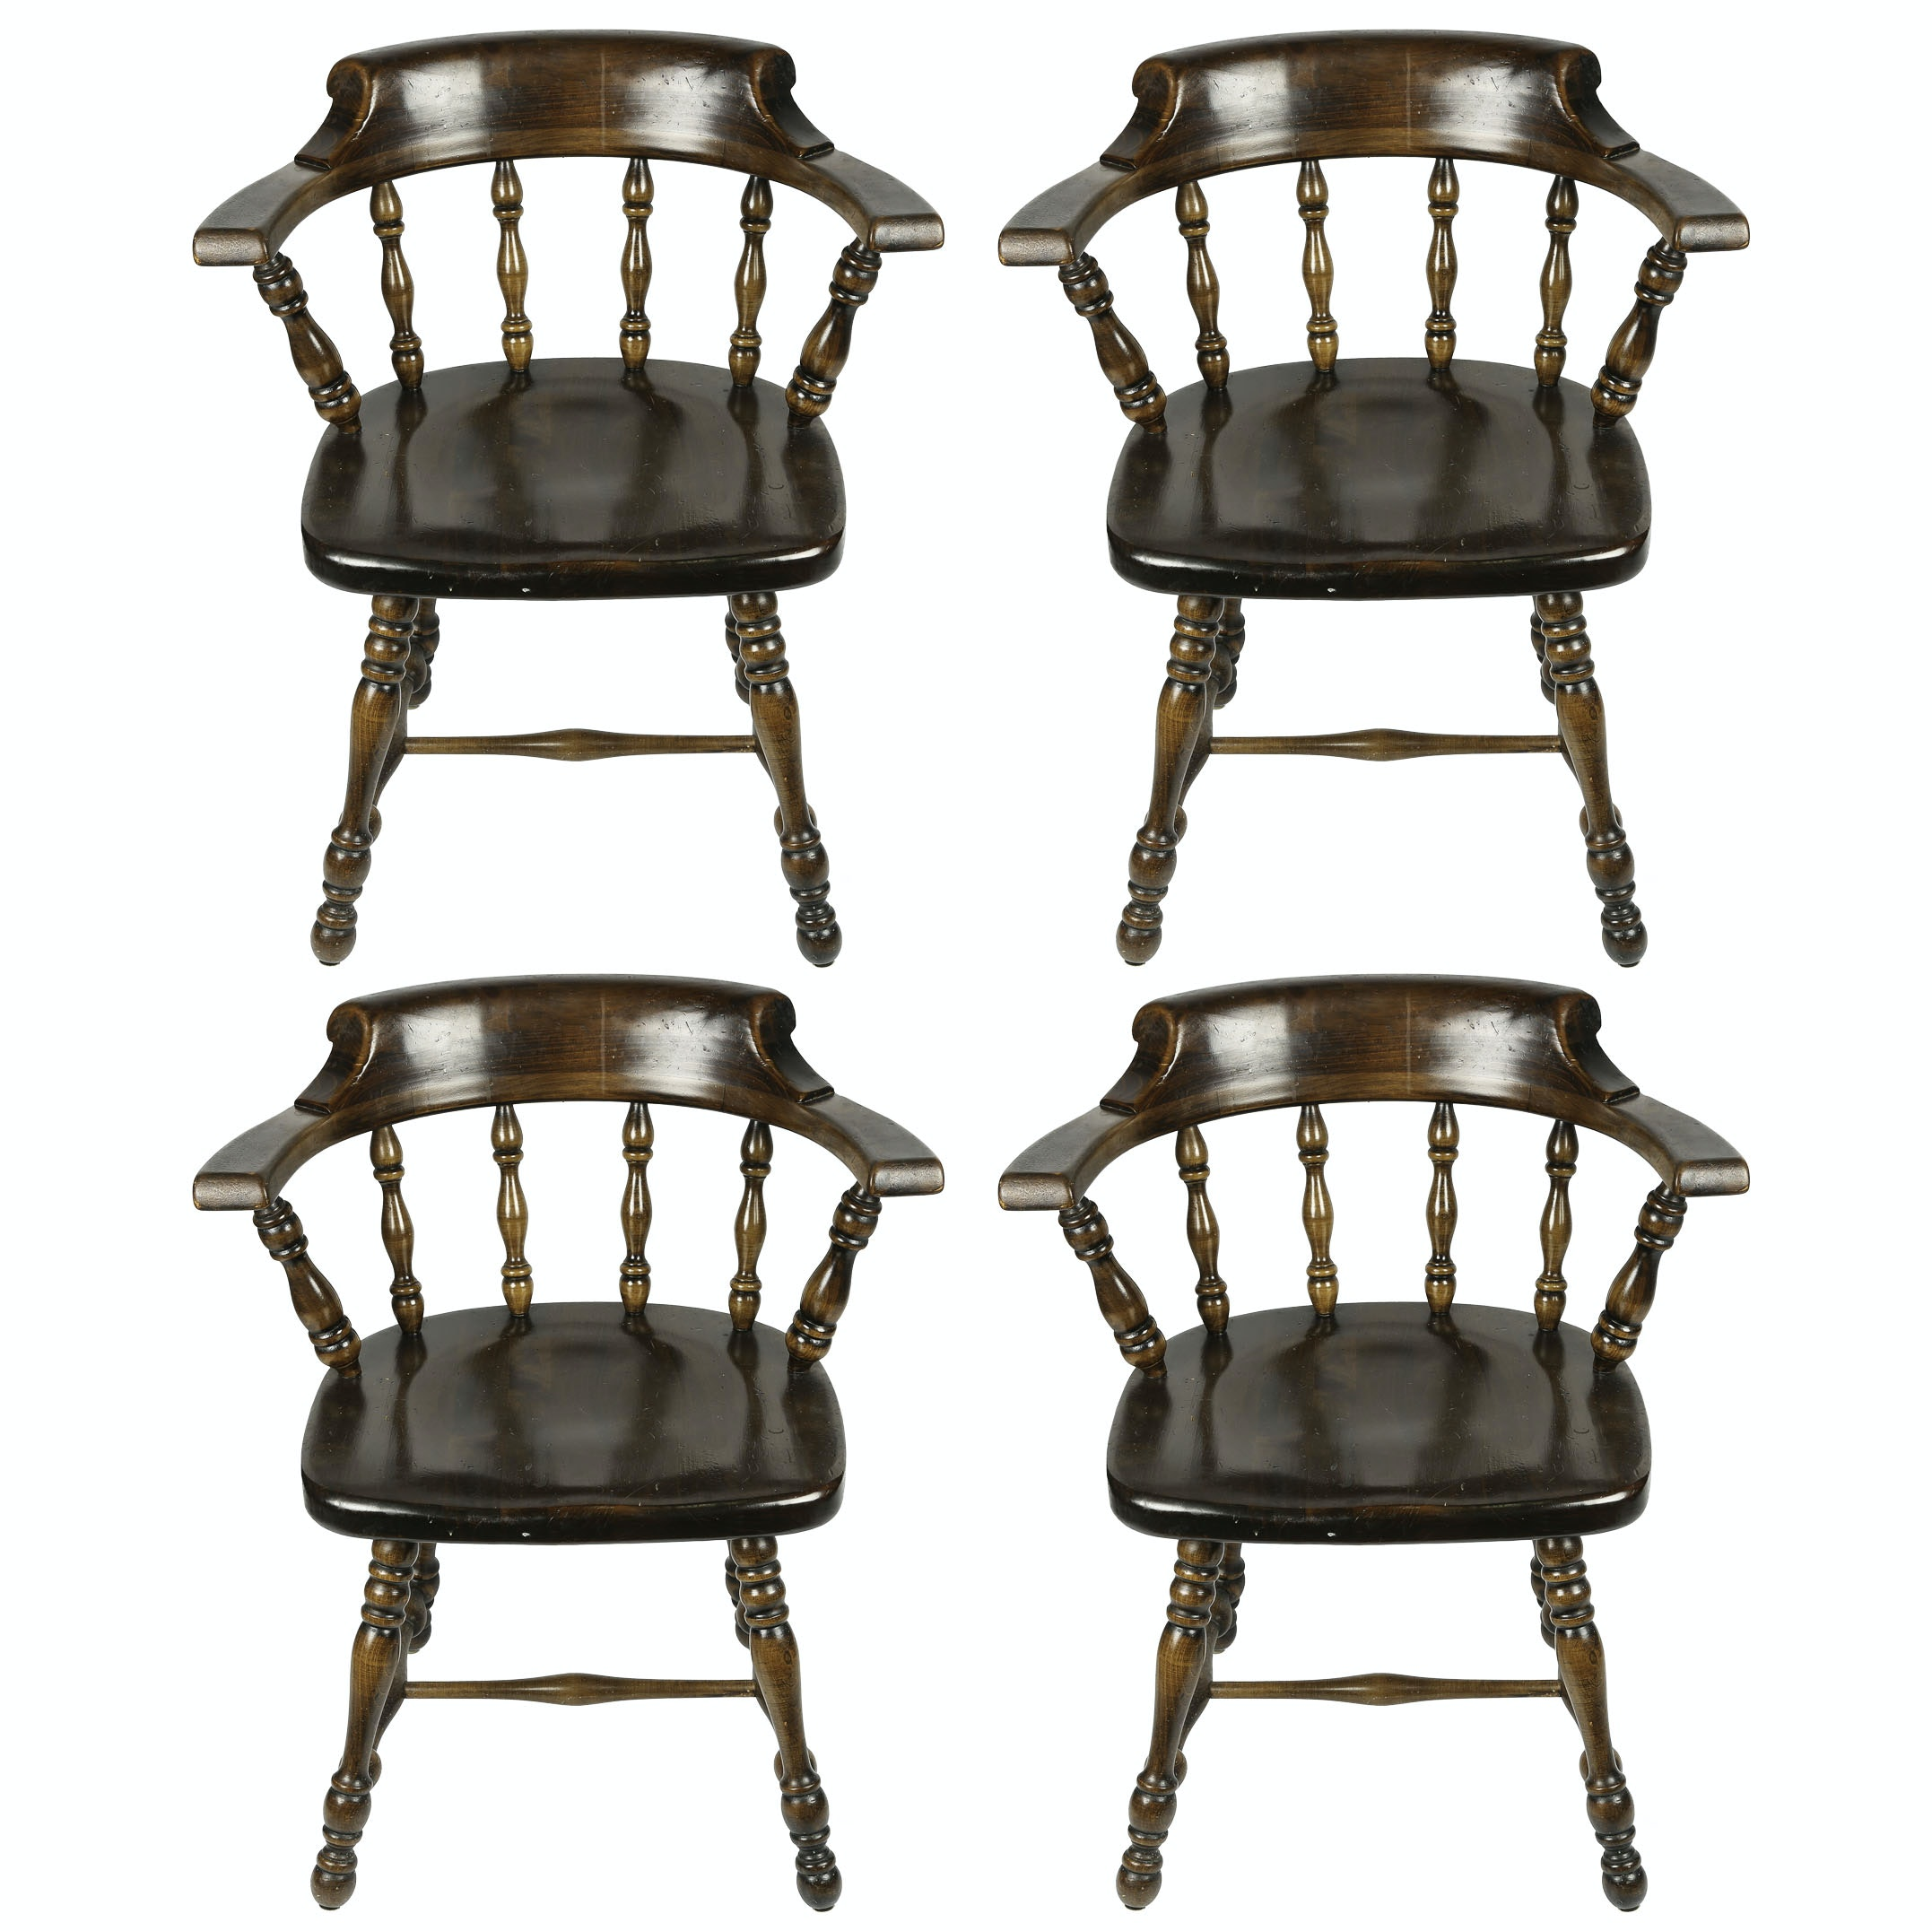 Vintage Colonial Revival Tavern Chairs By Ethan Allen ...